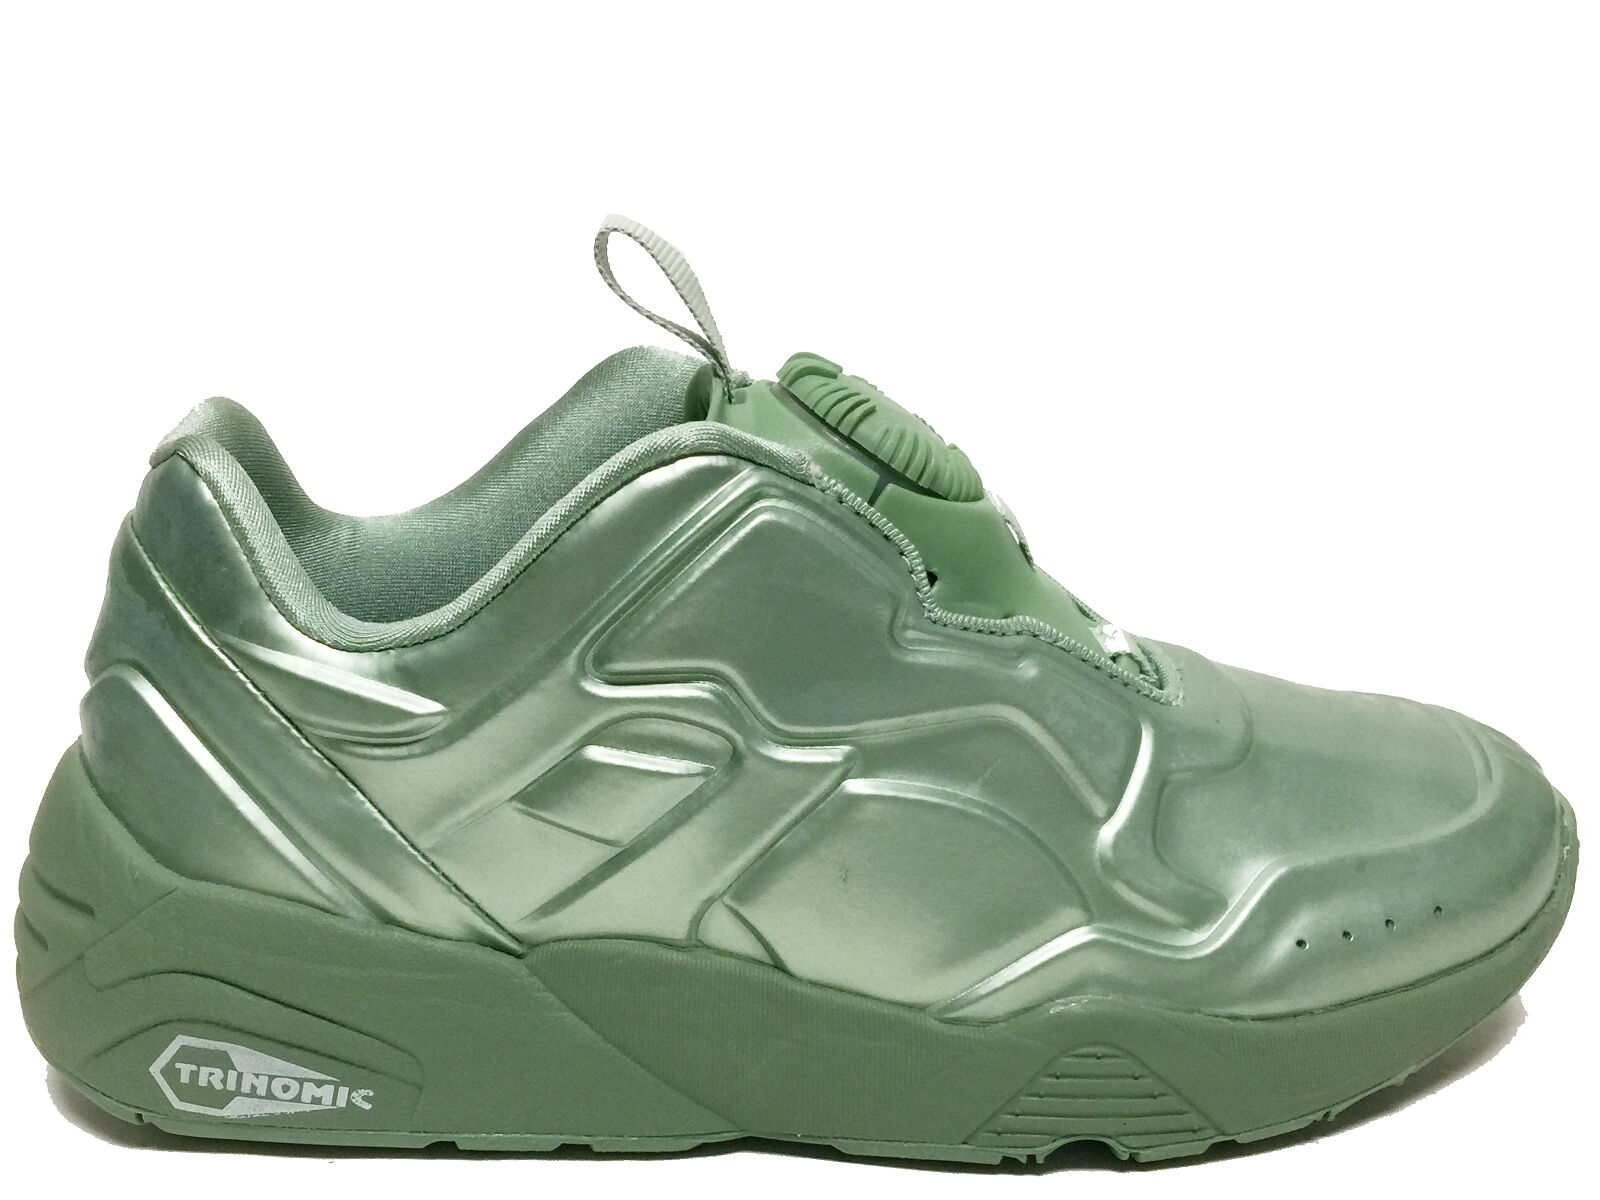 Brand New Puma Disc 89 Metal Men's Athletic Fashion Sneakers [359409 01]